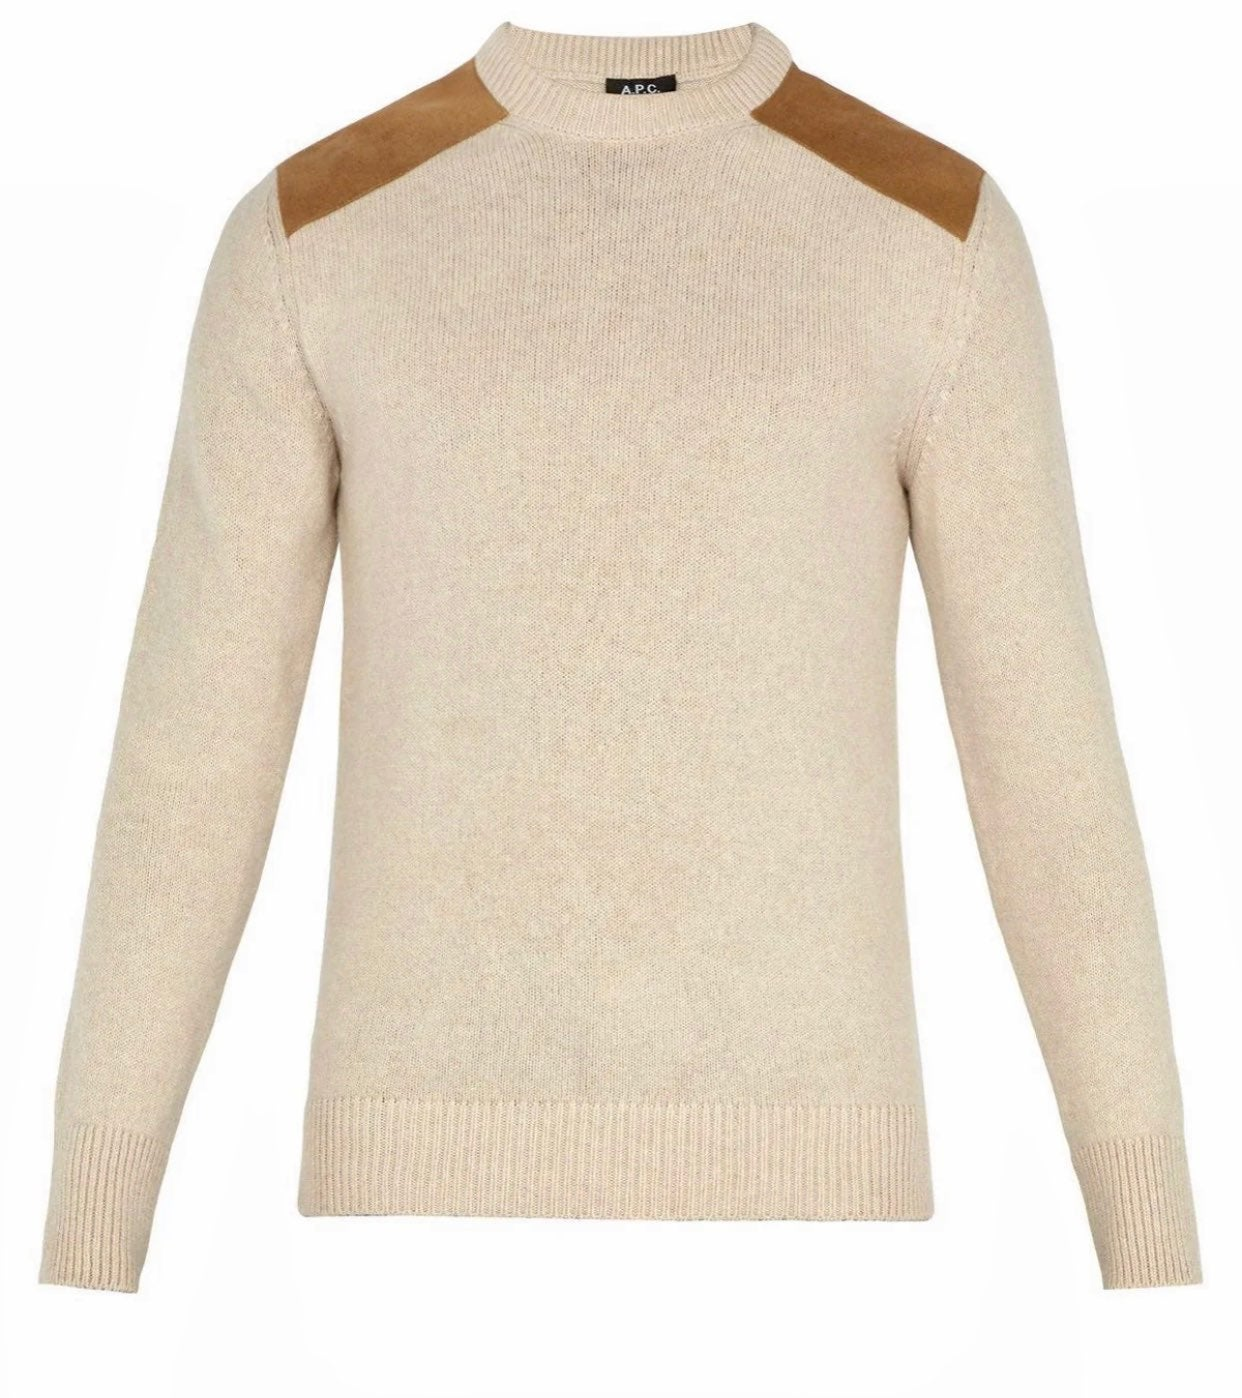 A.P.C (Pull Carsten) 100% Wool